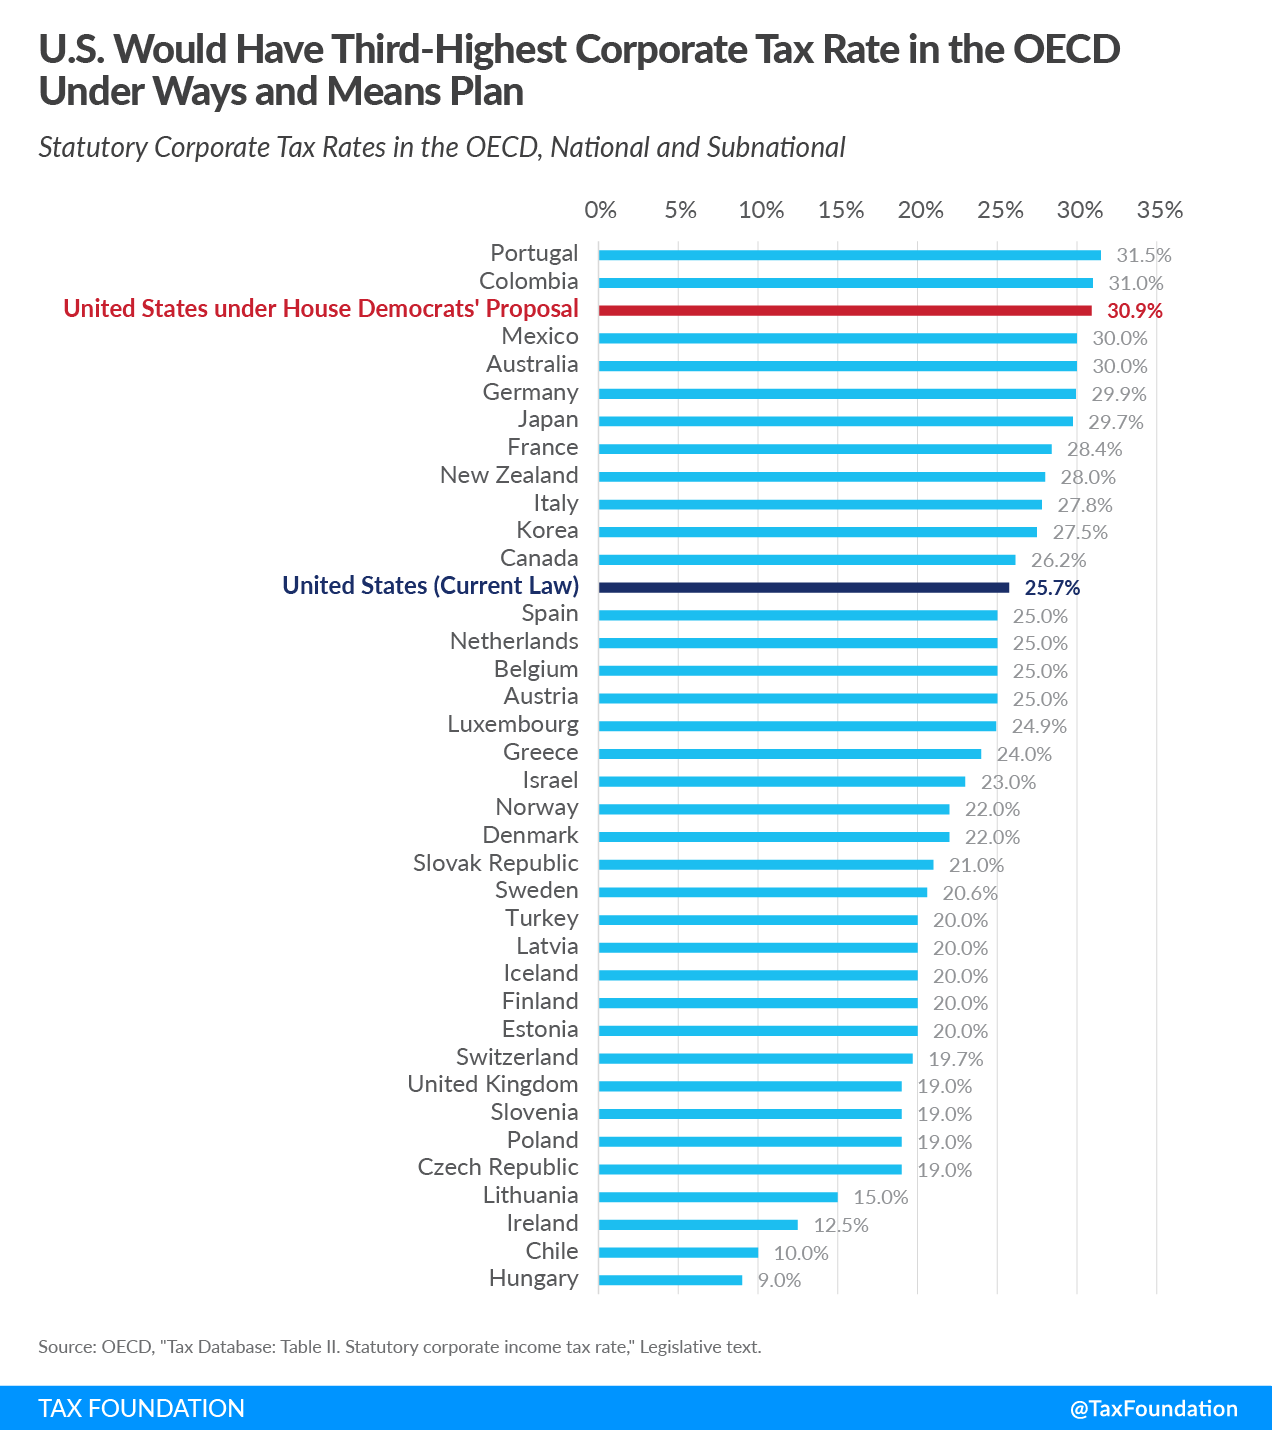 U.S. Would Have Third-Highest Corporate Tax Rate in OECD Under Ways and Means Plan